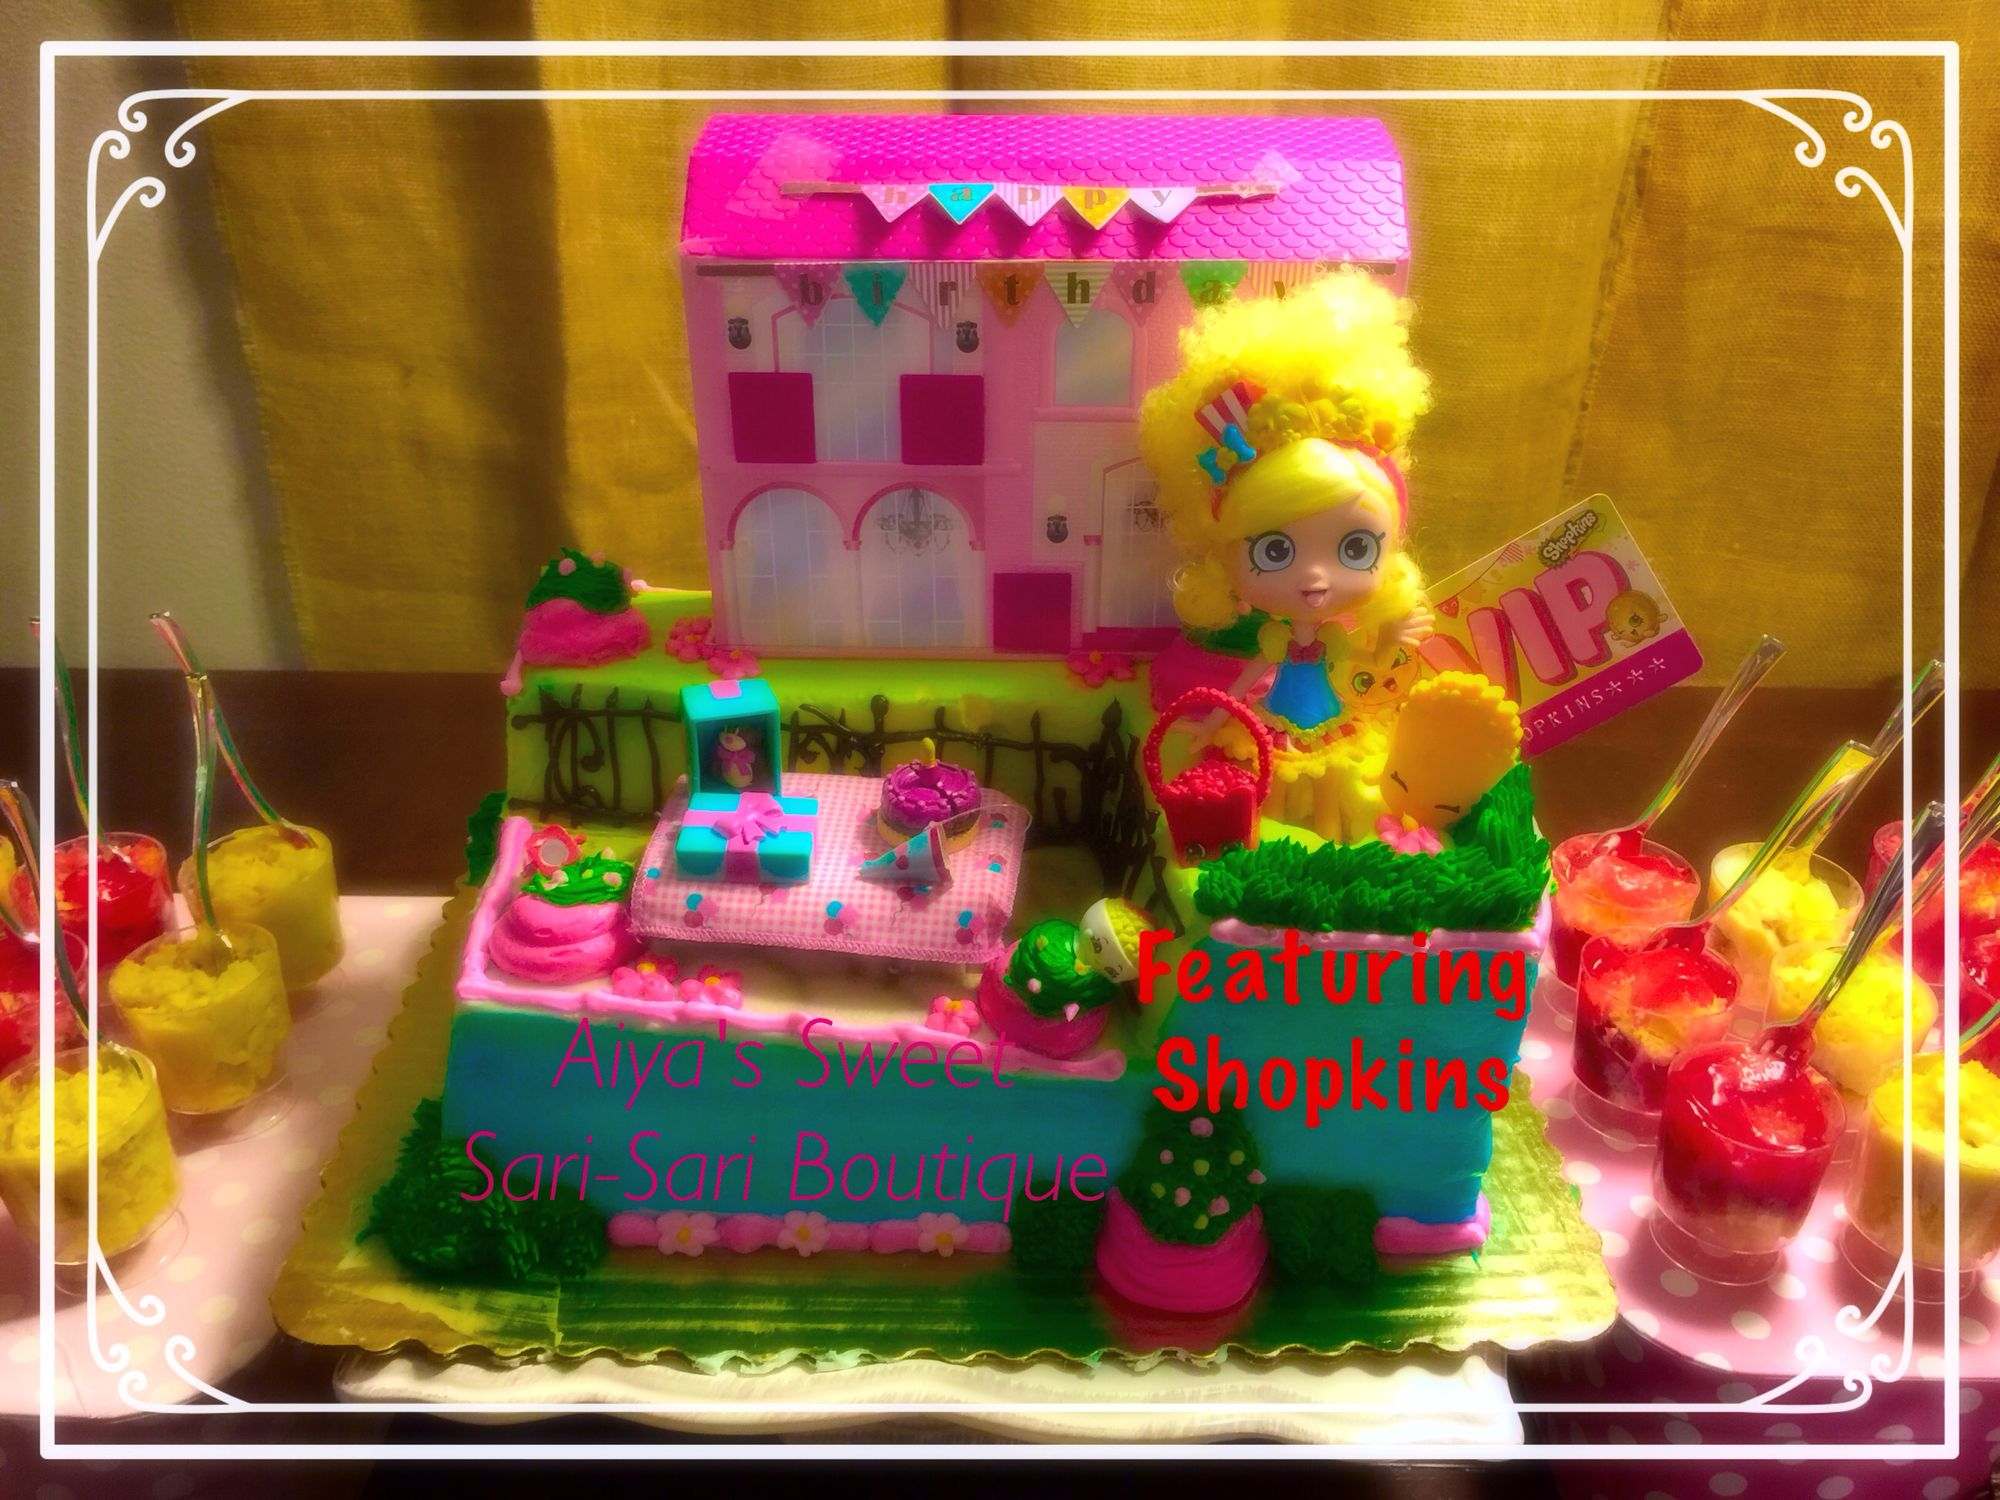 Shopkins cake DIY Purchase a Barbie hello kitty etc cake from